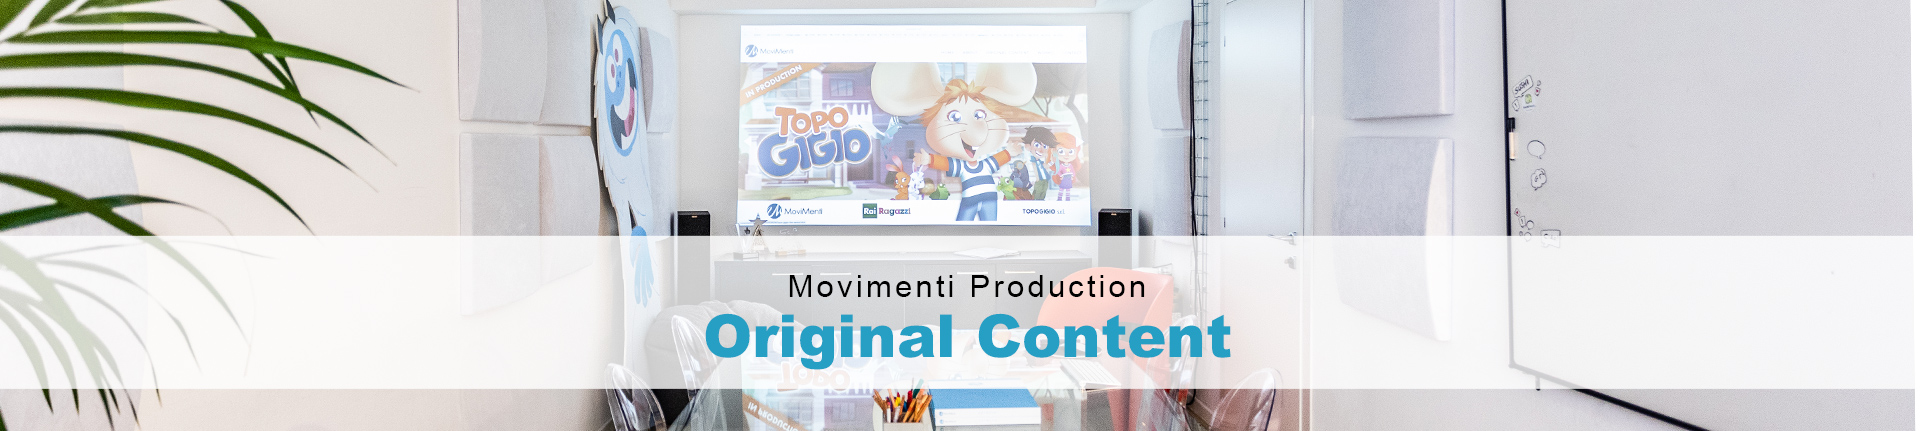 Original Contents Gallery Movimenti Productions